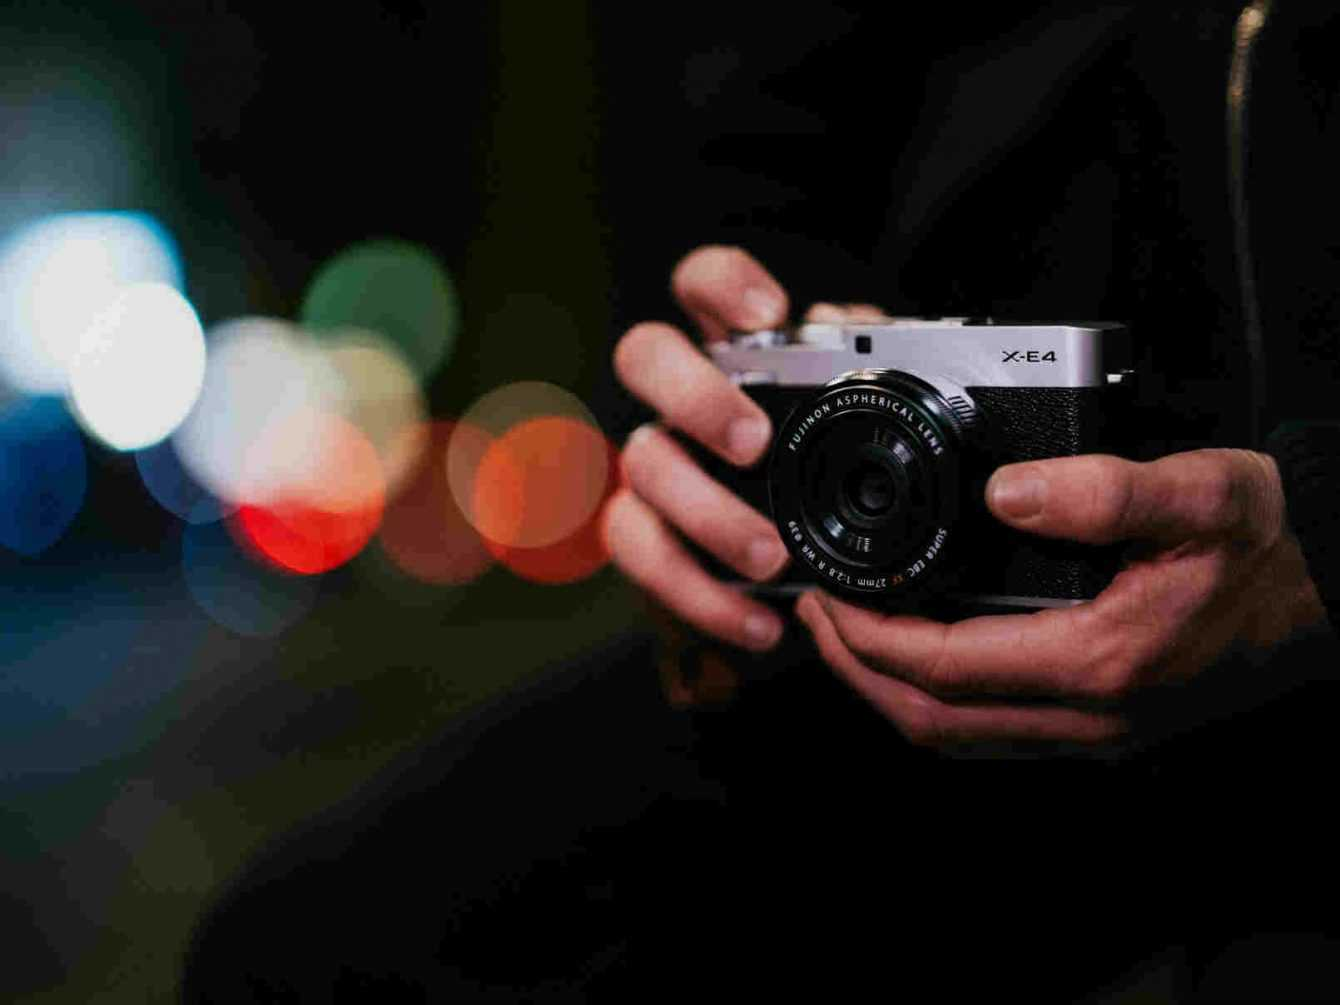 FUJIFILM X-E4: old style, lots of technology